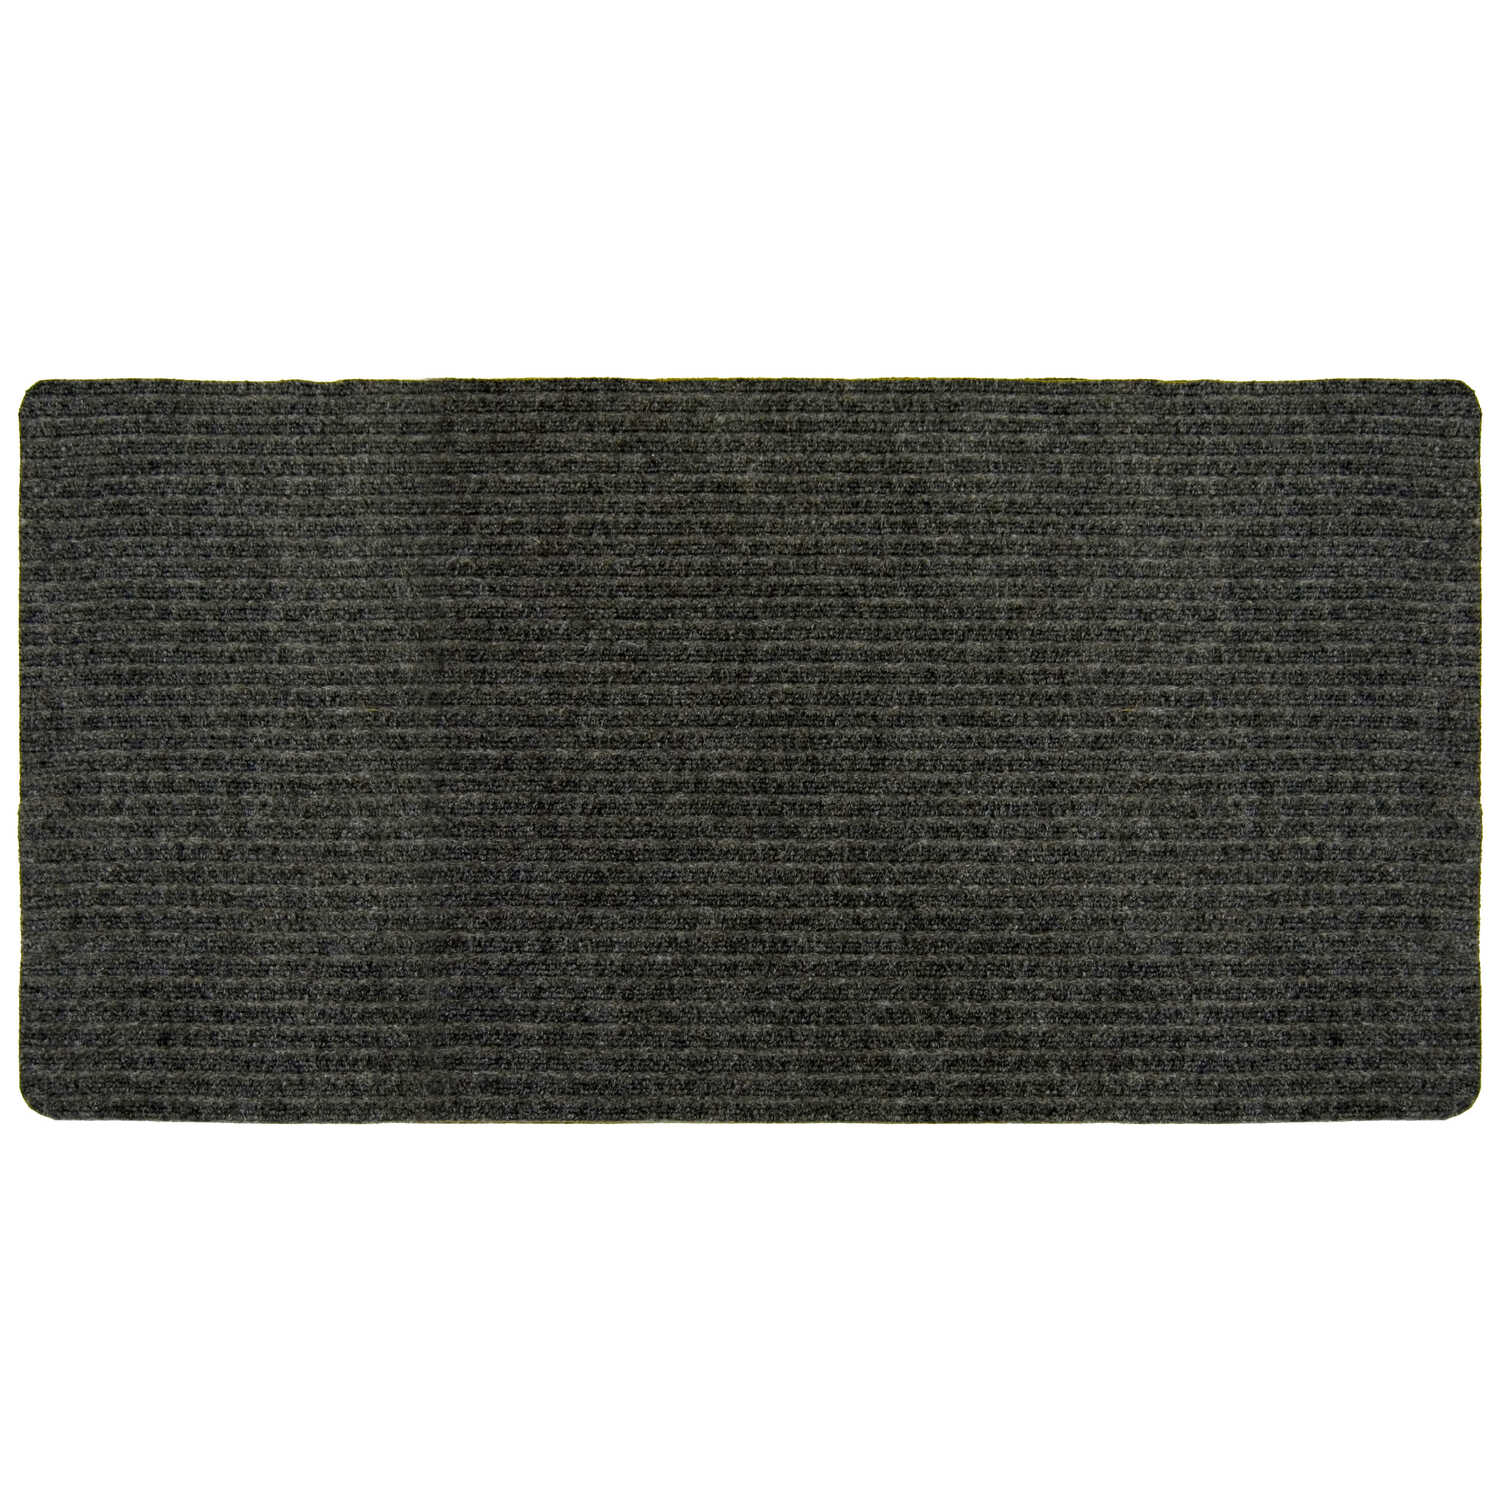 Multy Home  Charcoal  Polypropylene  Nonslip Utility Mat  60 in. L x 24 in. W